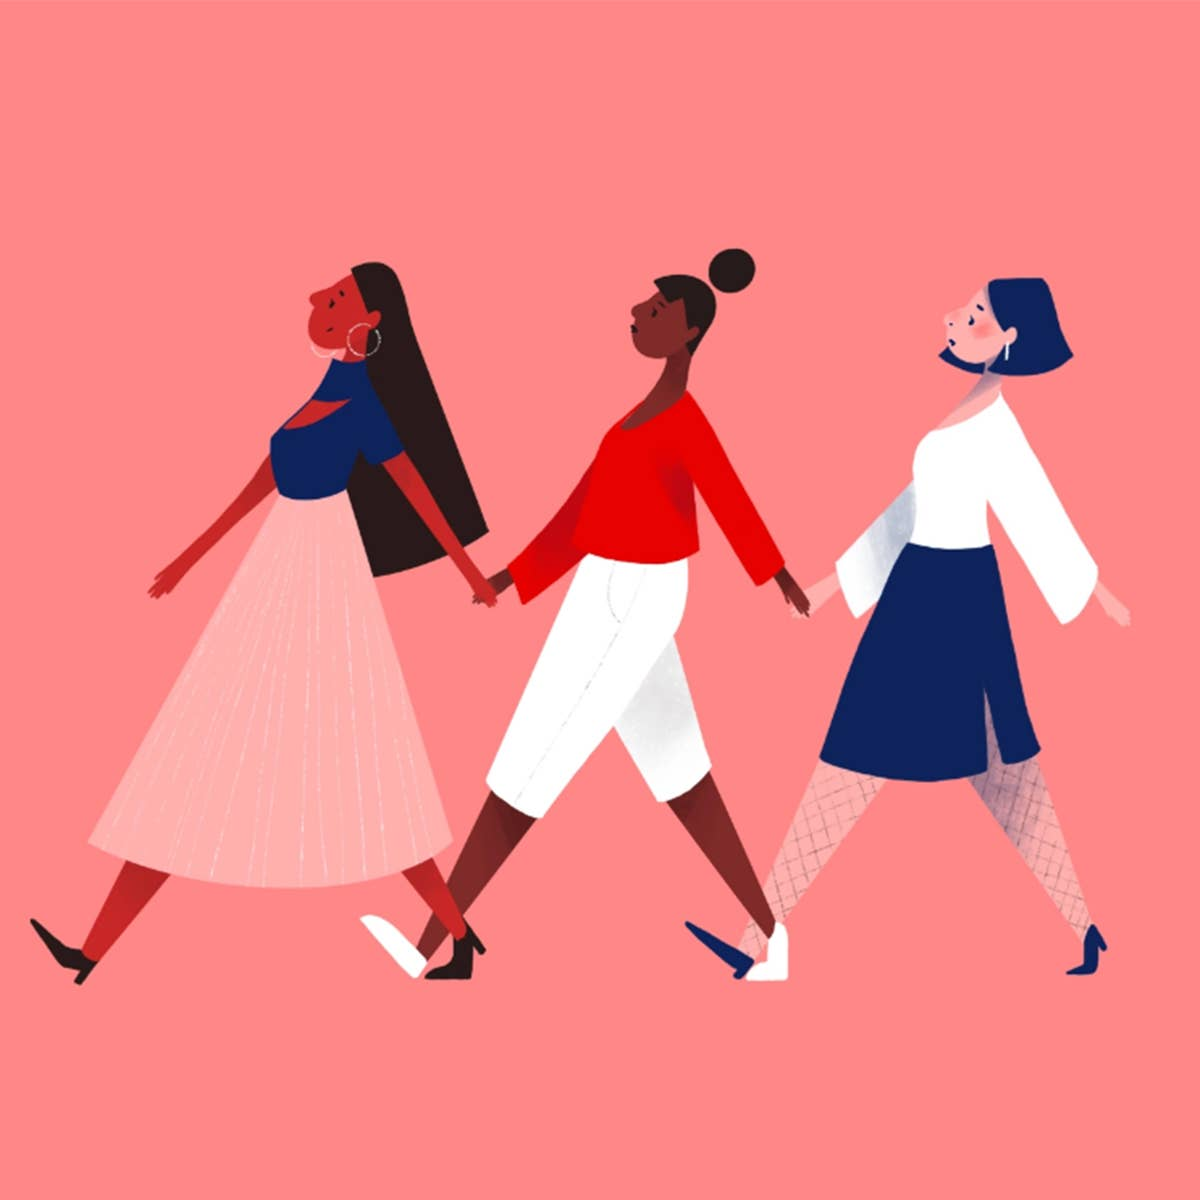 Sisterhood sounds cliché but is vital in a corporate gender unequal world, particularly after COVID-19